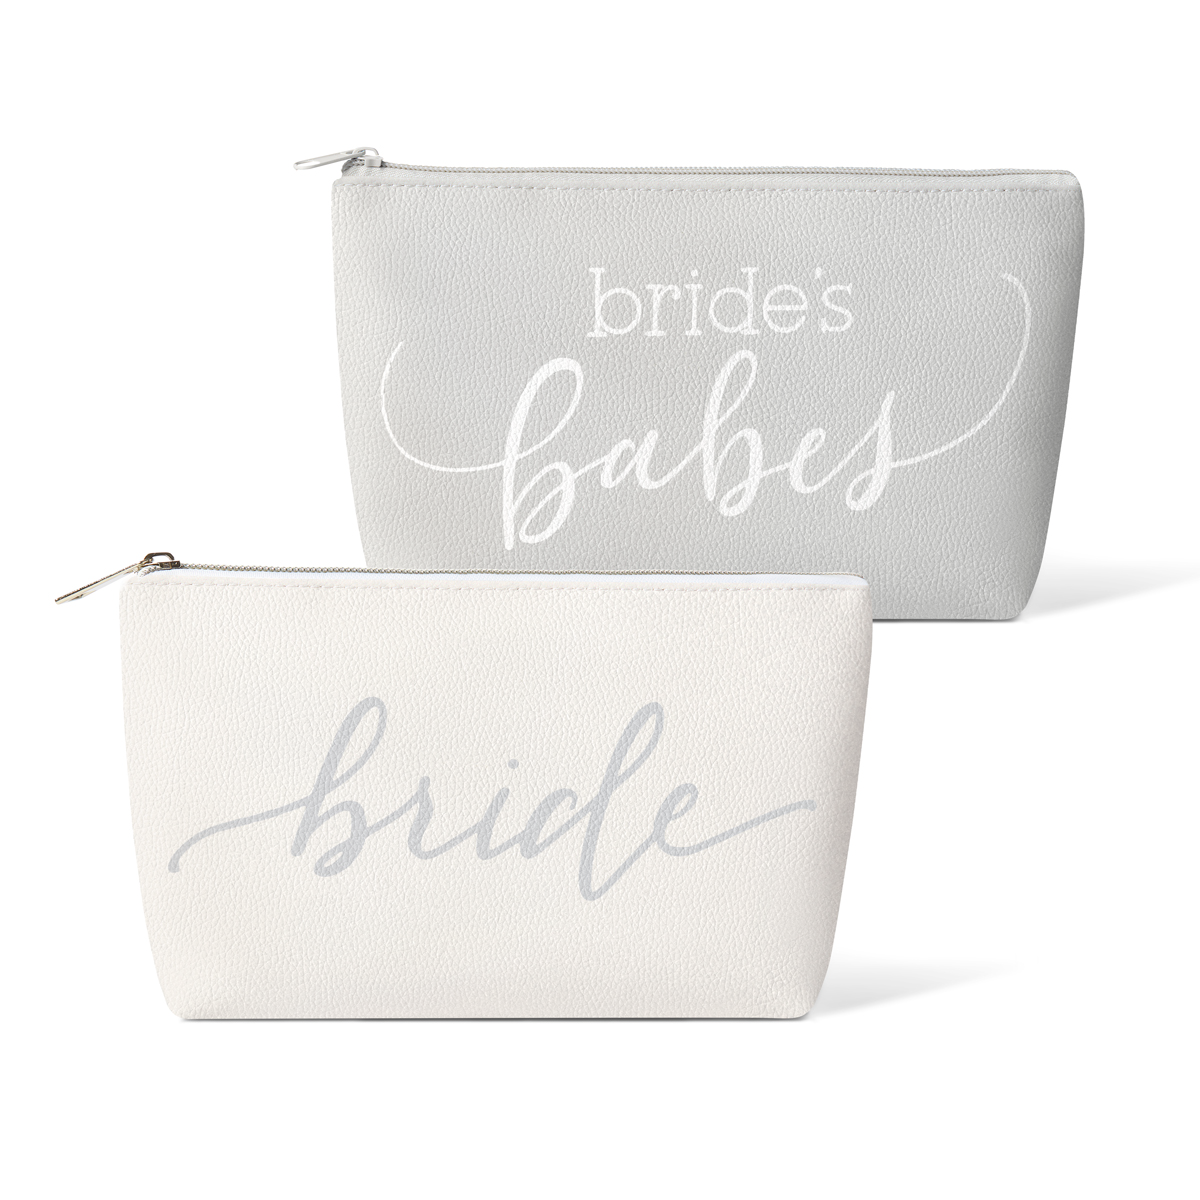 Grey Bride's Babes Faux Leather Makeup Bags